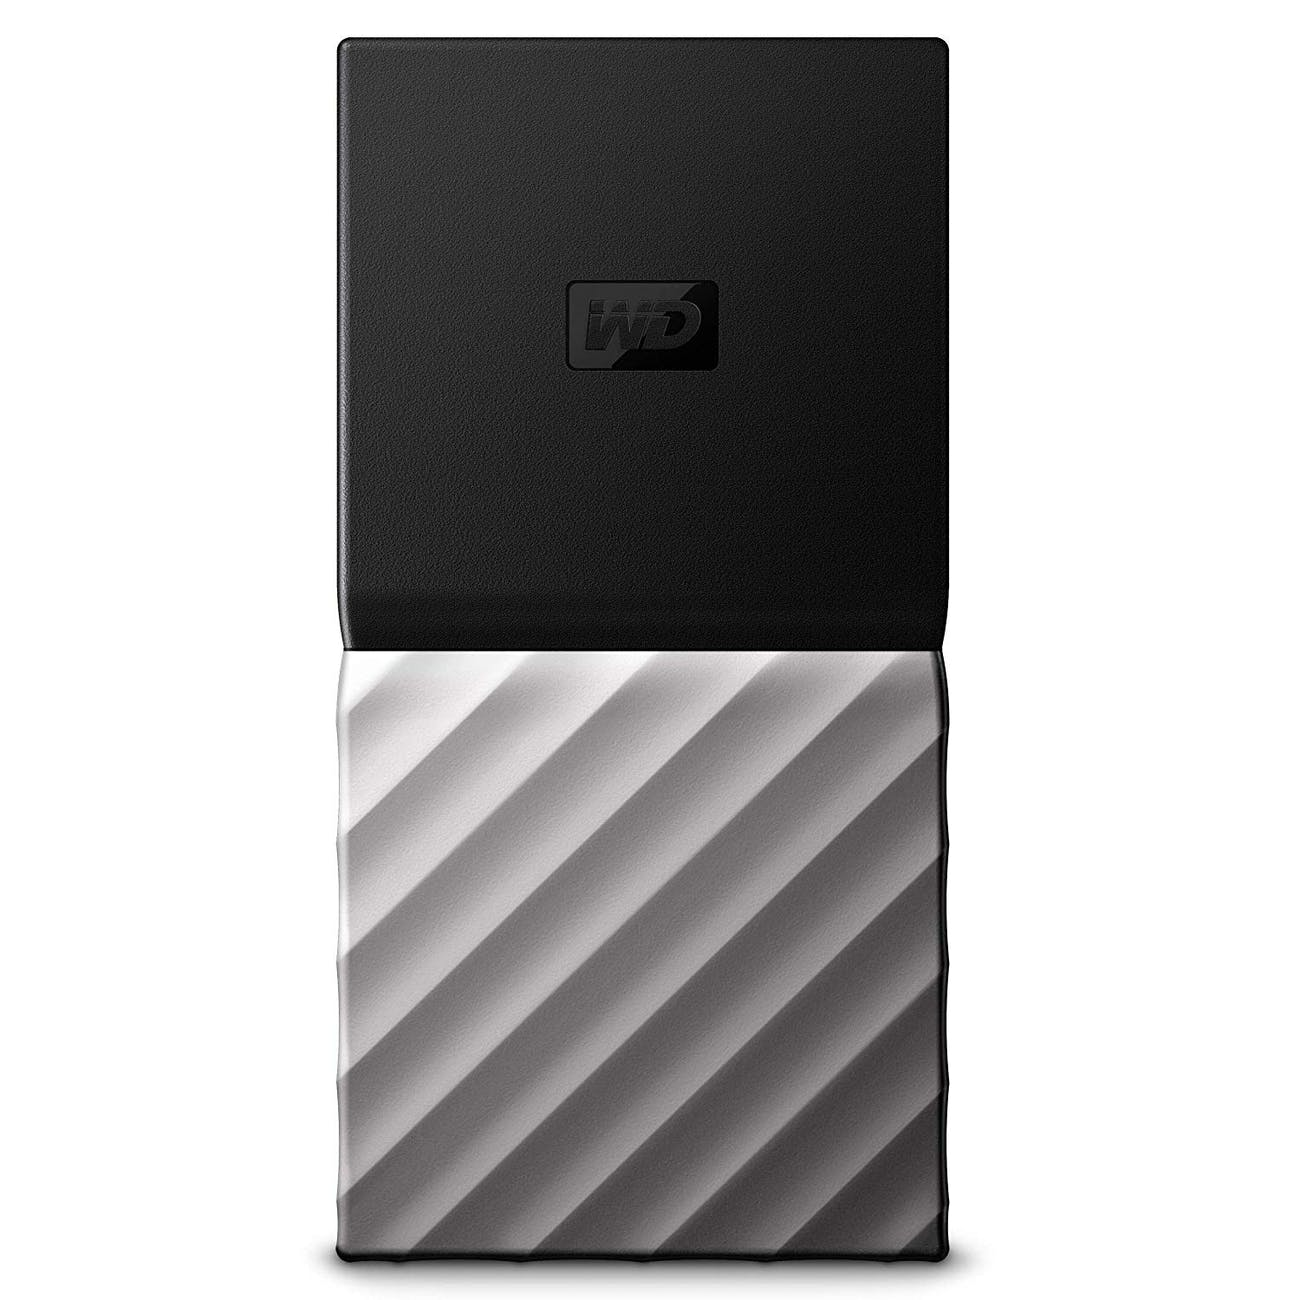 WD 2TB My Passport SSD Portable Storage - USB 3.1 - Black-Gray - WDBKVX0020PSL-WESN